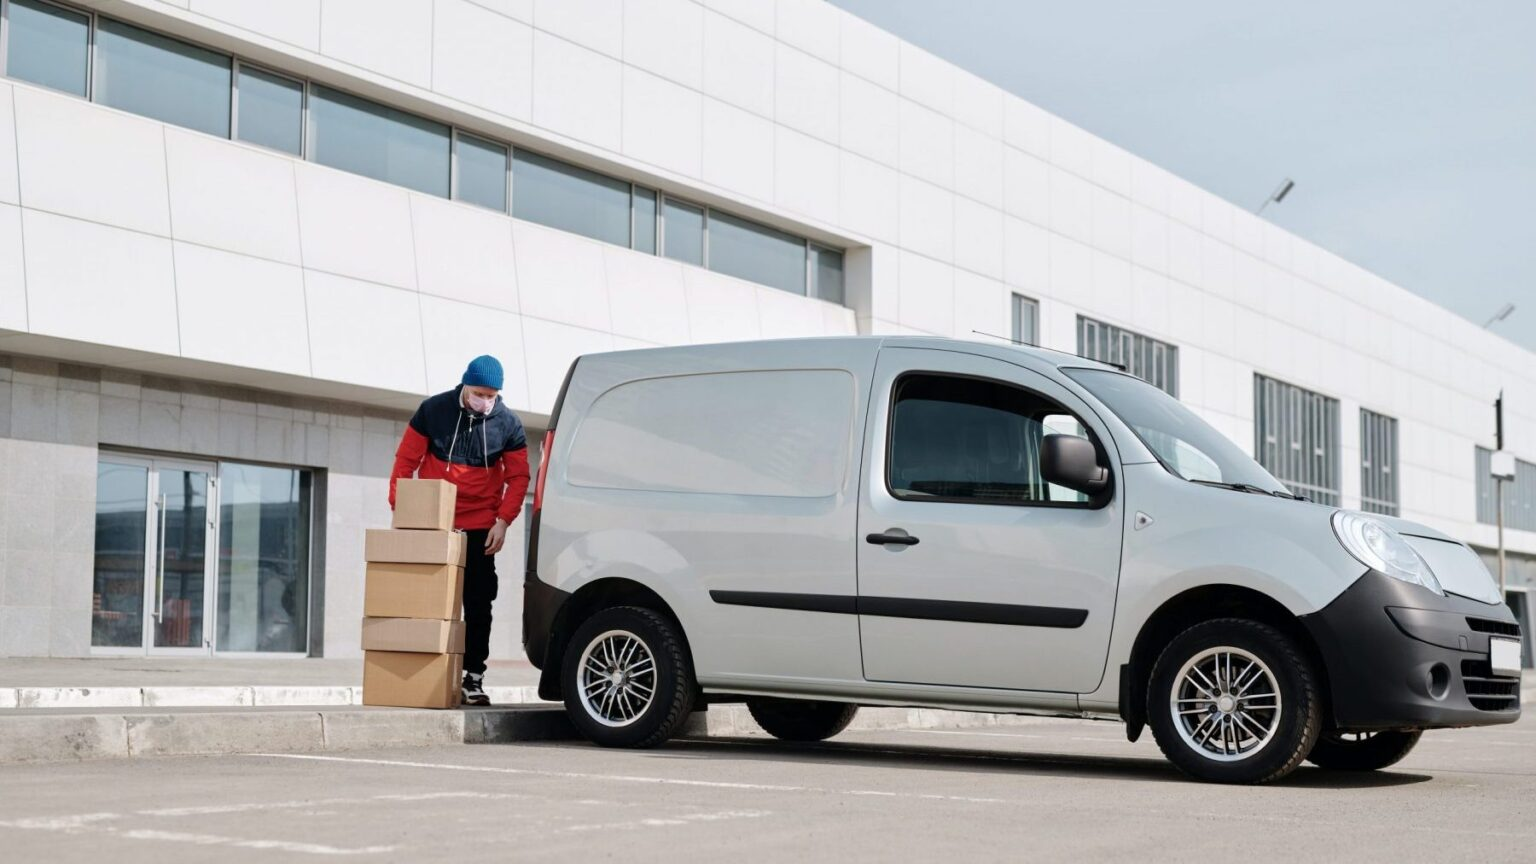 Pulpomatic and Ozone Drive team up for more profitable and sustainable leasing fleets